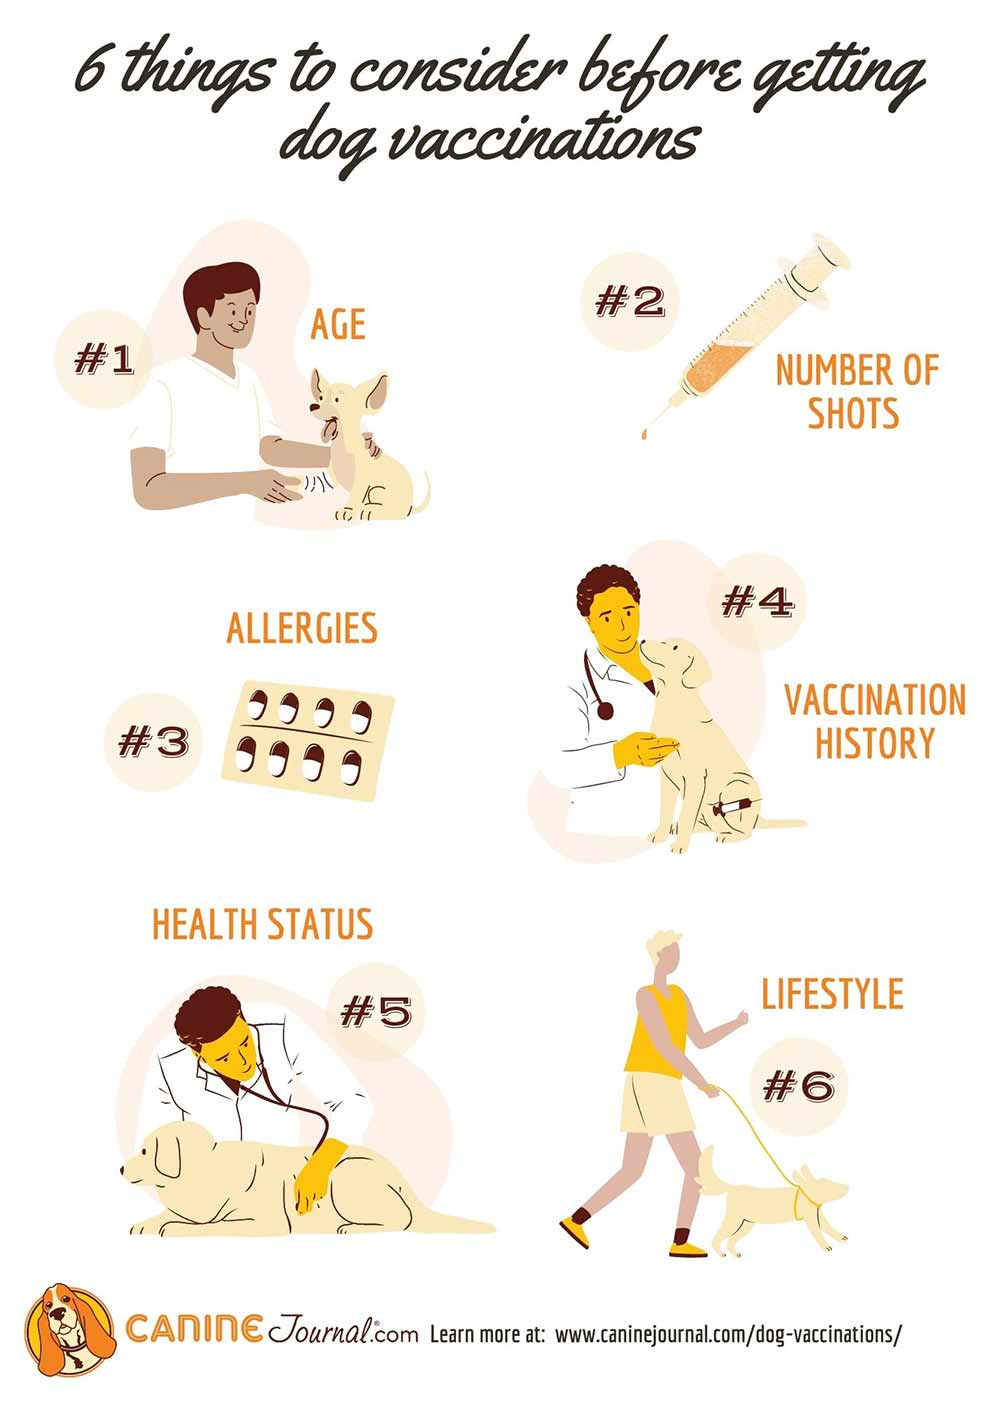 Things to Consider Before Getting Dog Vaccinations Infographic